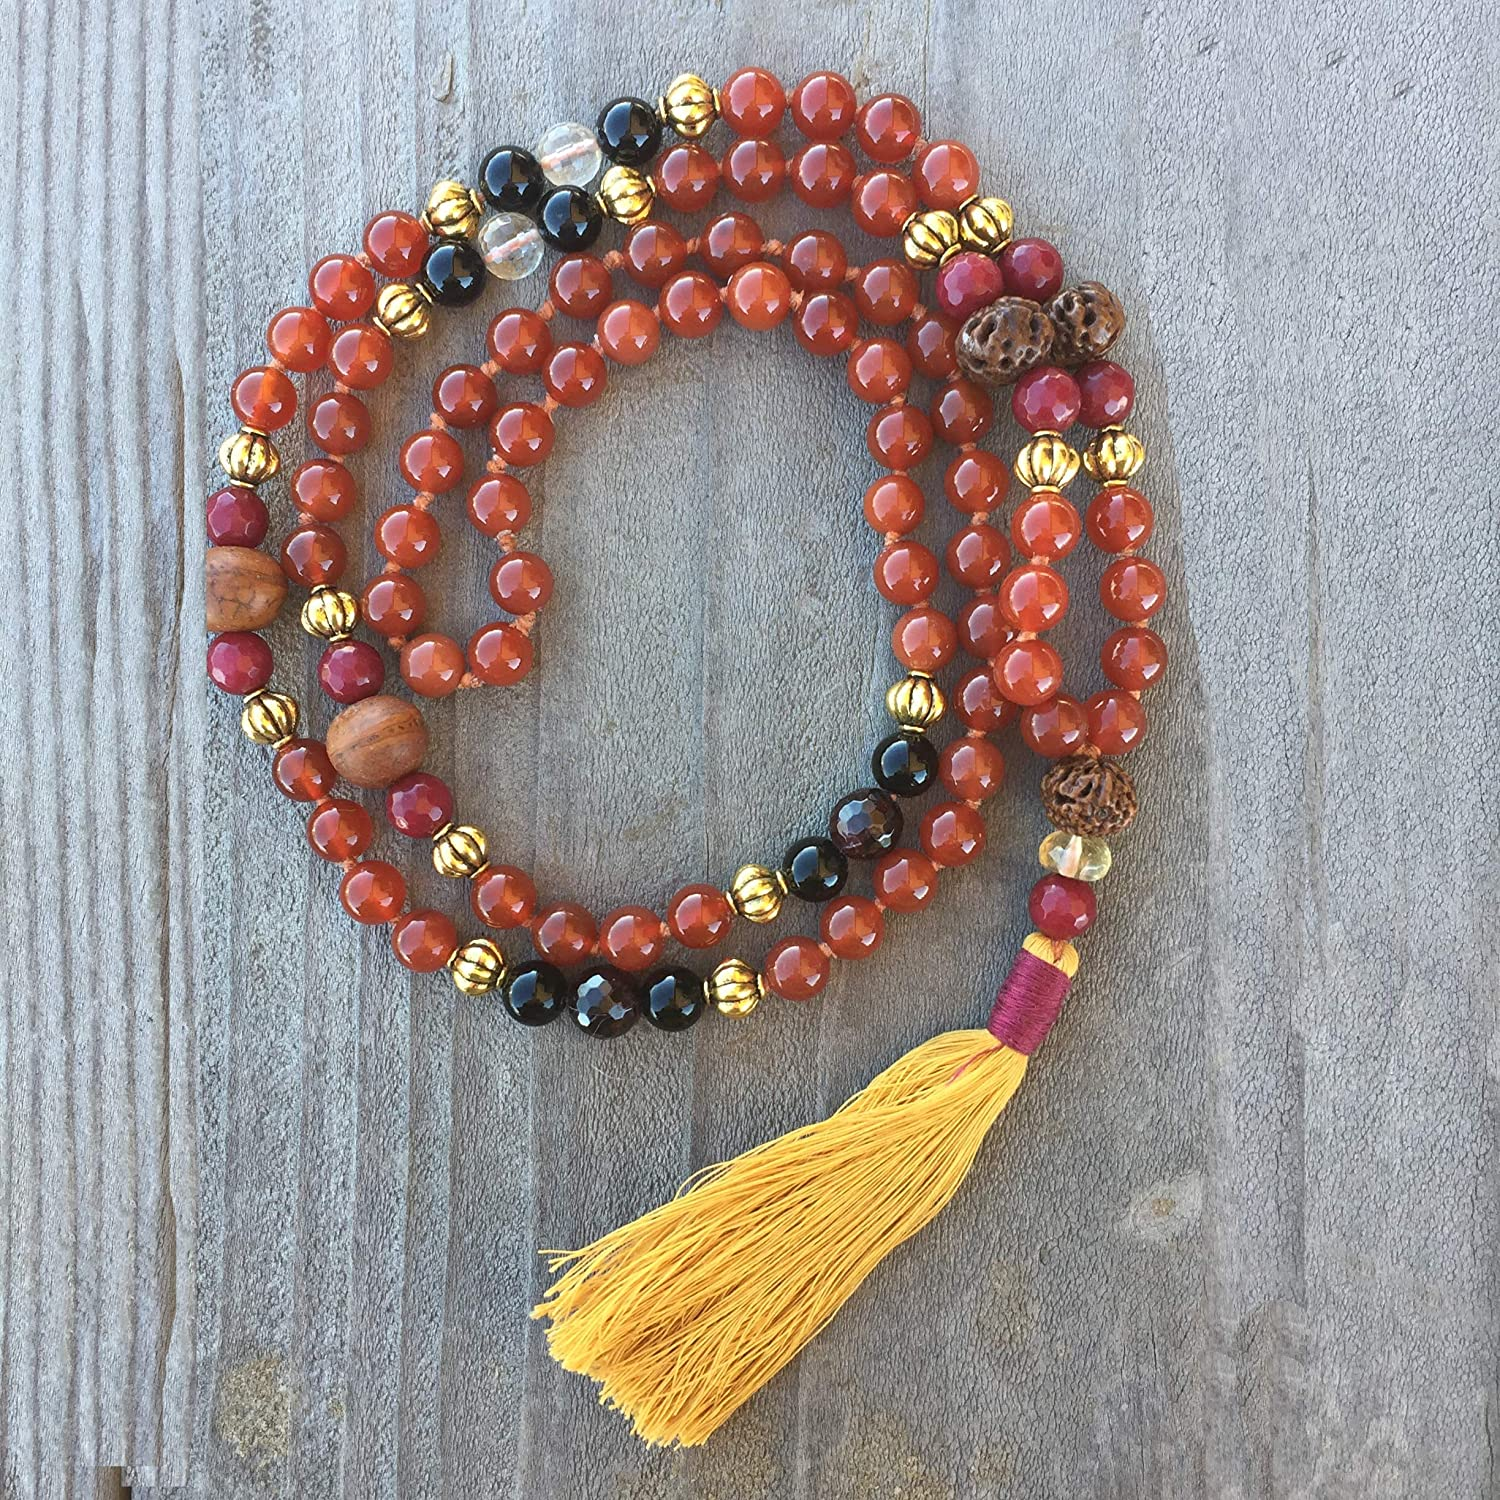 ite Mala 108 Beads Electromagnetic Filtering Stone